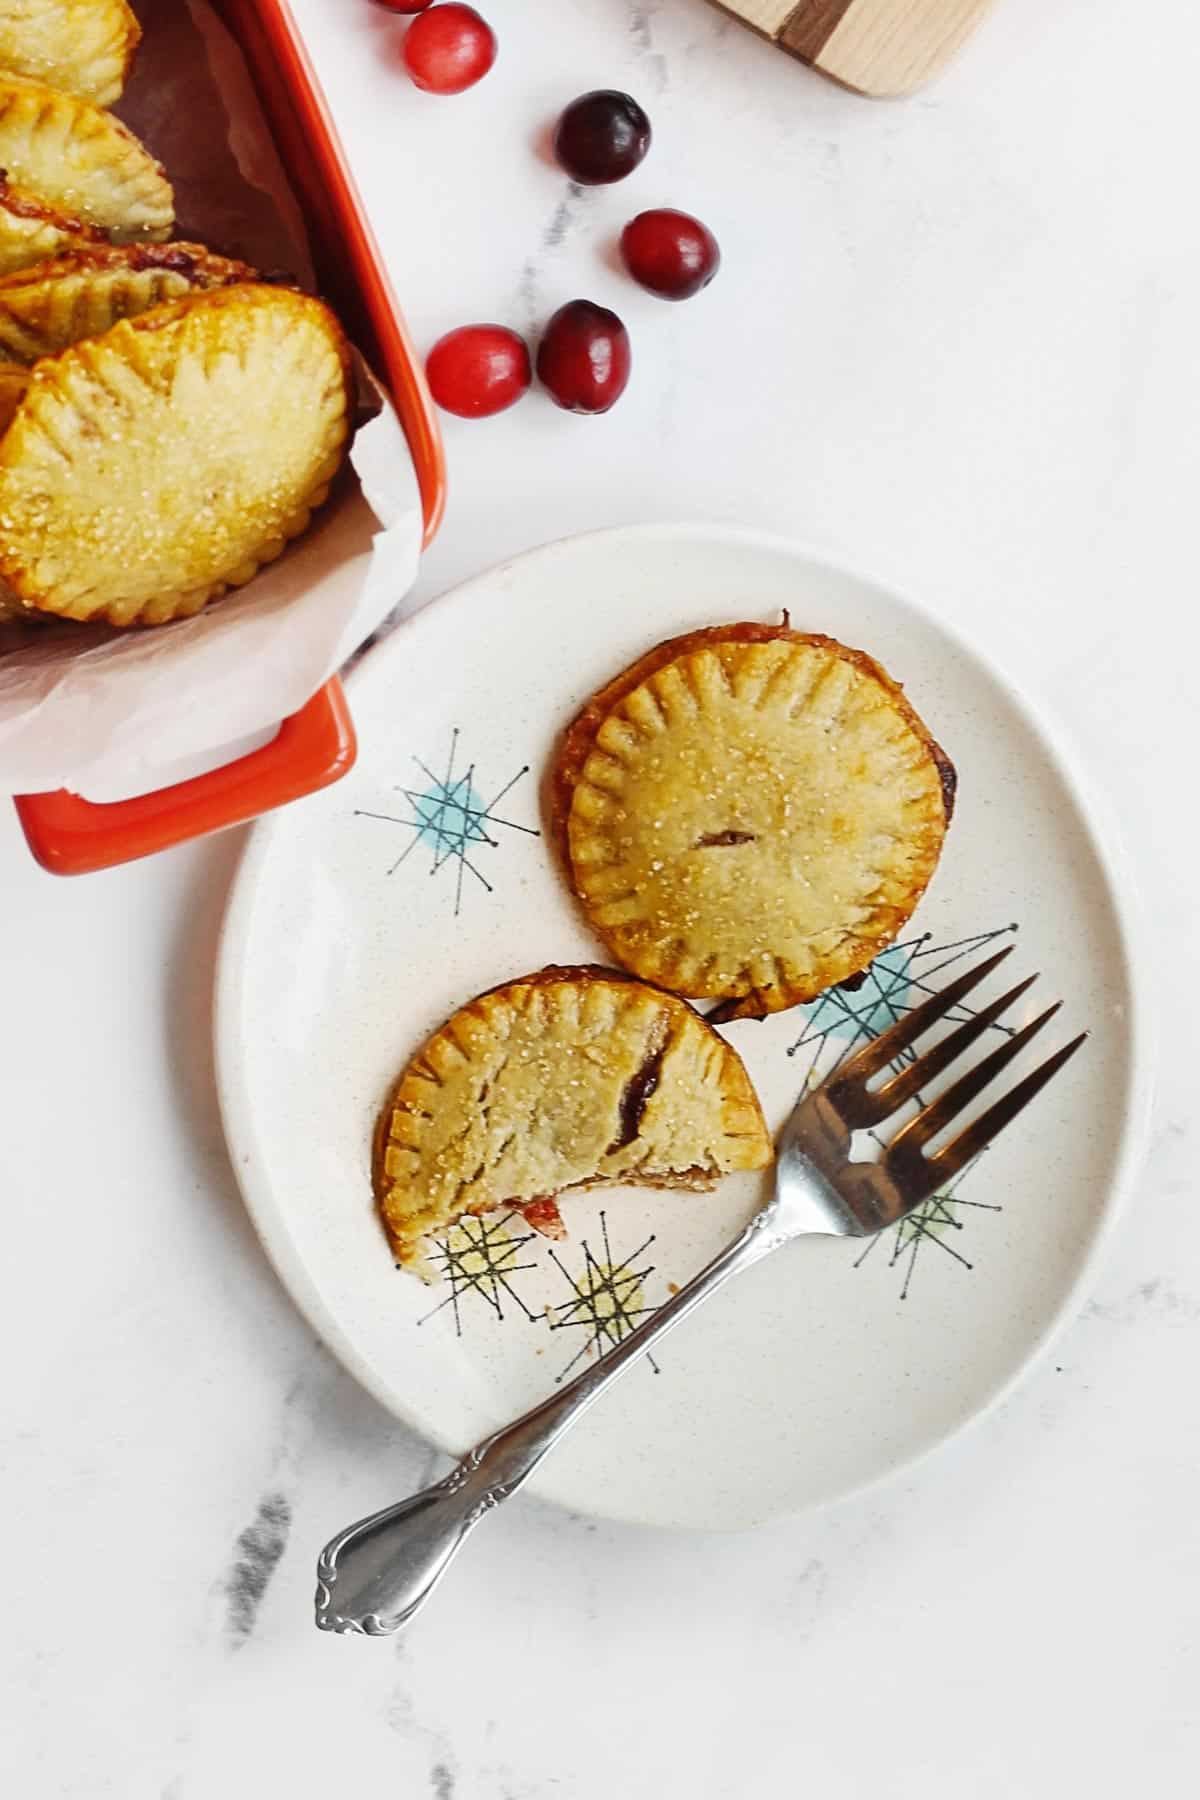 Cranberry orange hand pies on a plate